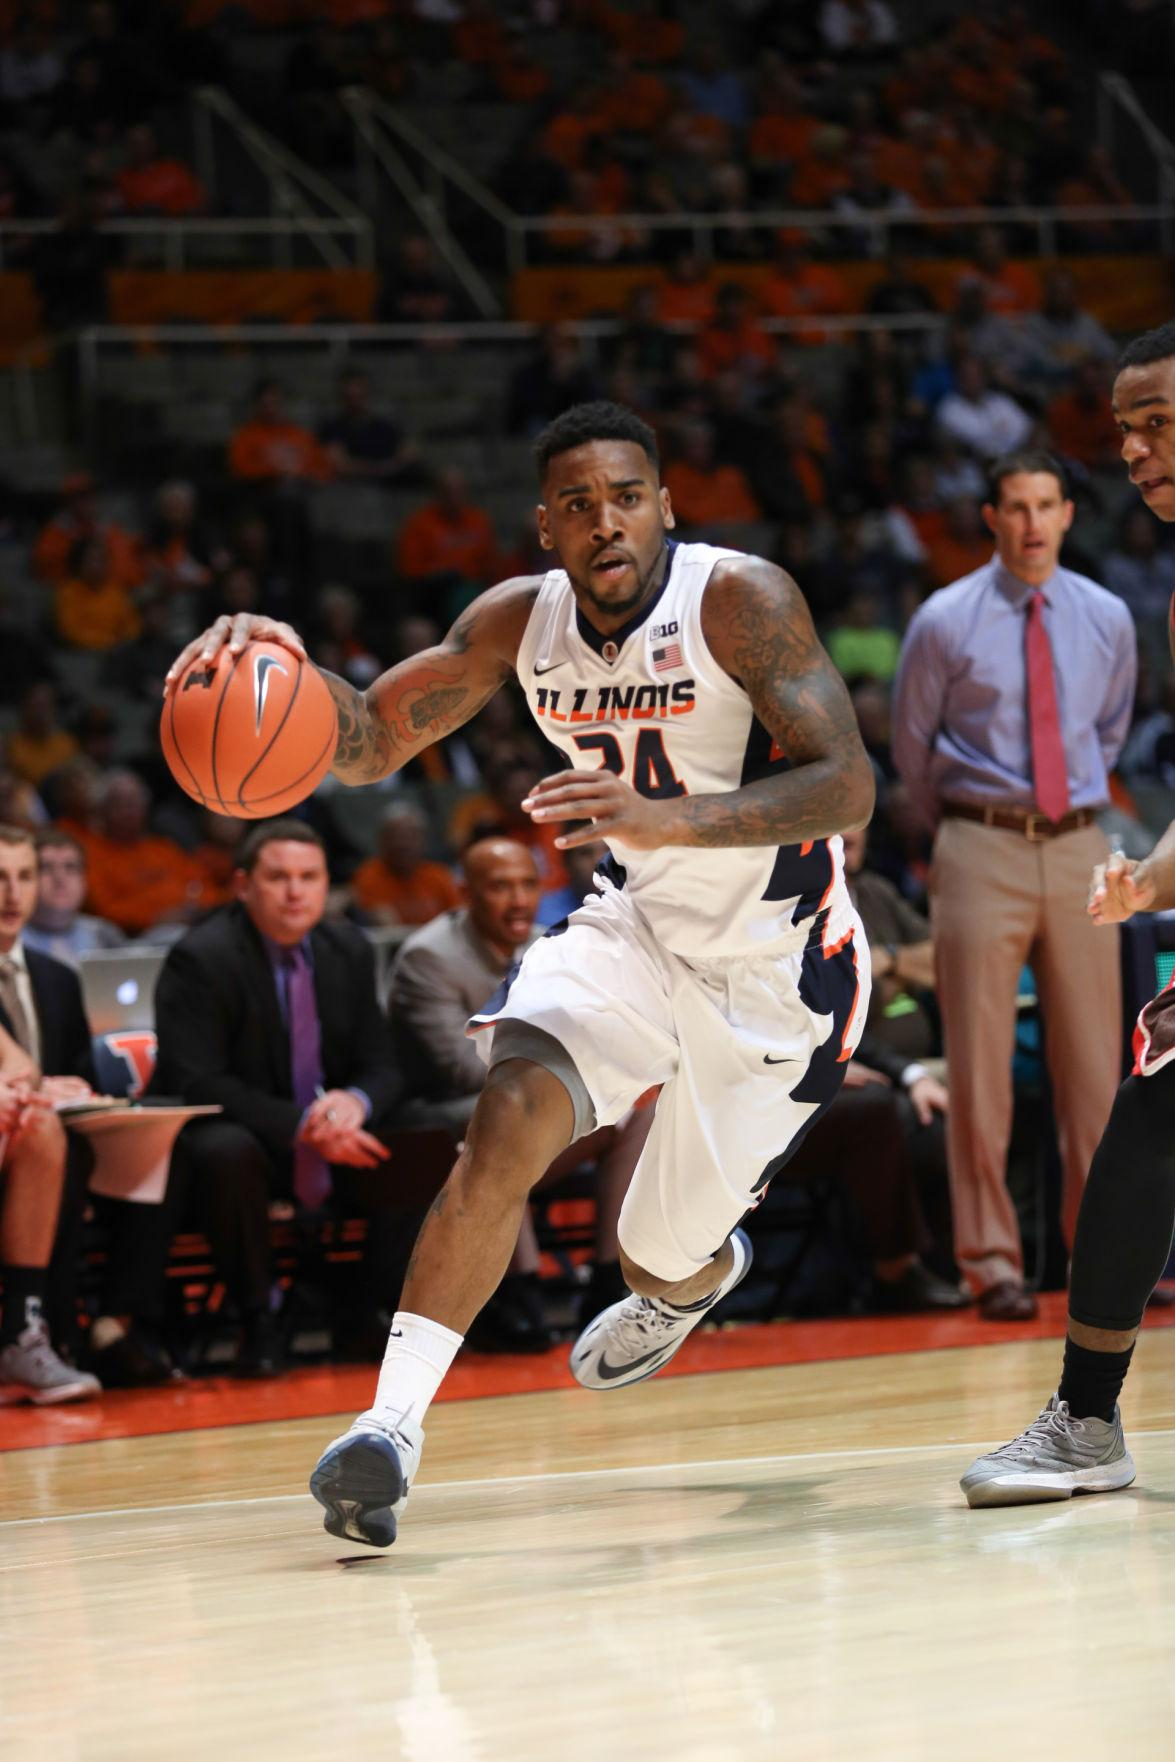 Illinois' Rayvonte Rice (24) drives towards the basket during the game against Brown at State Farm Center, on Nov. 24, 2014. The Illini won 89-68.